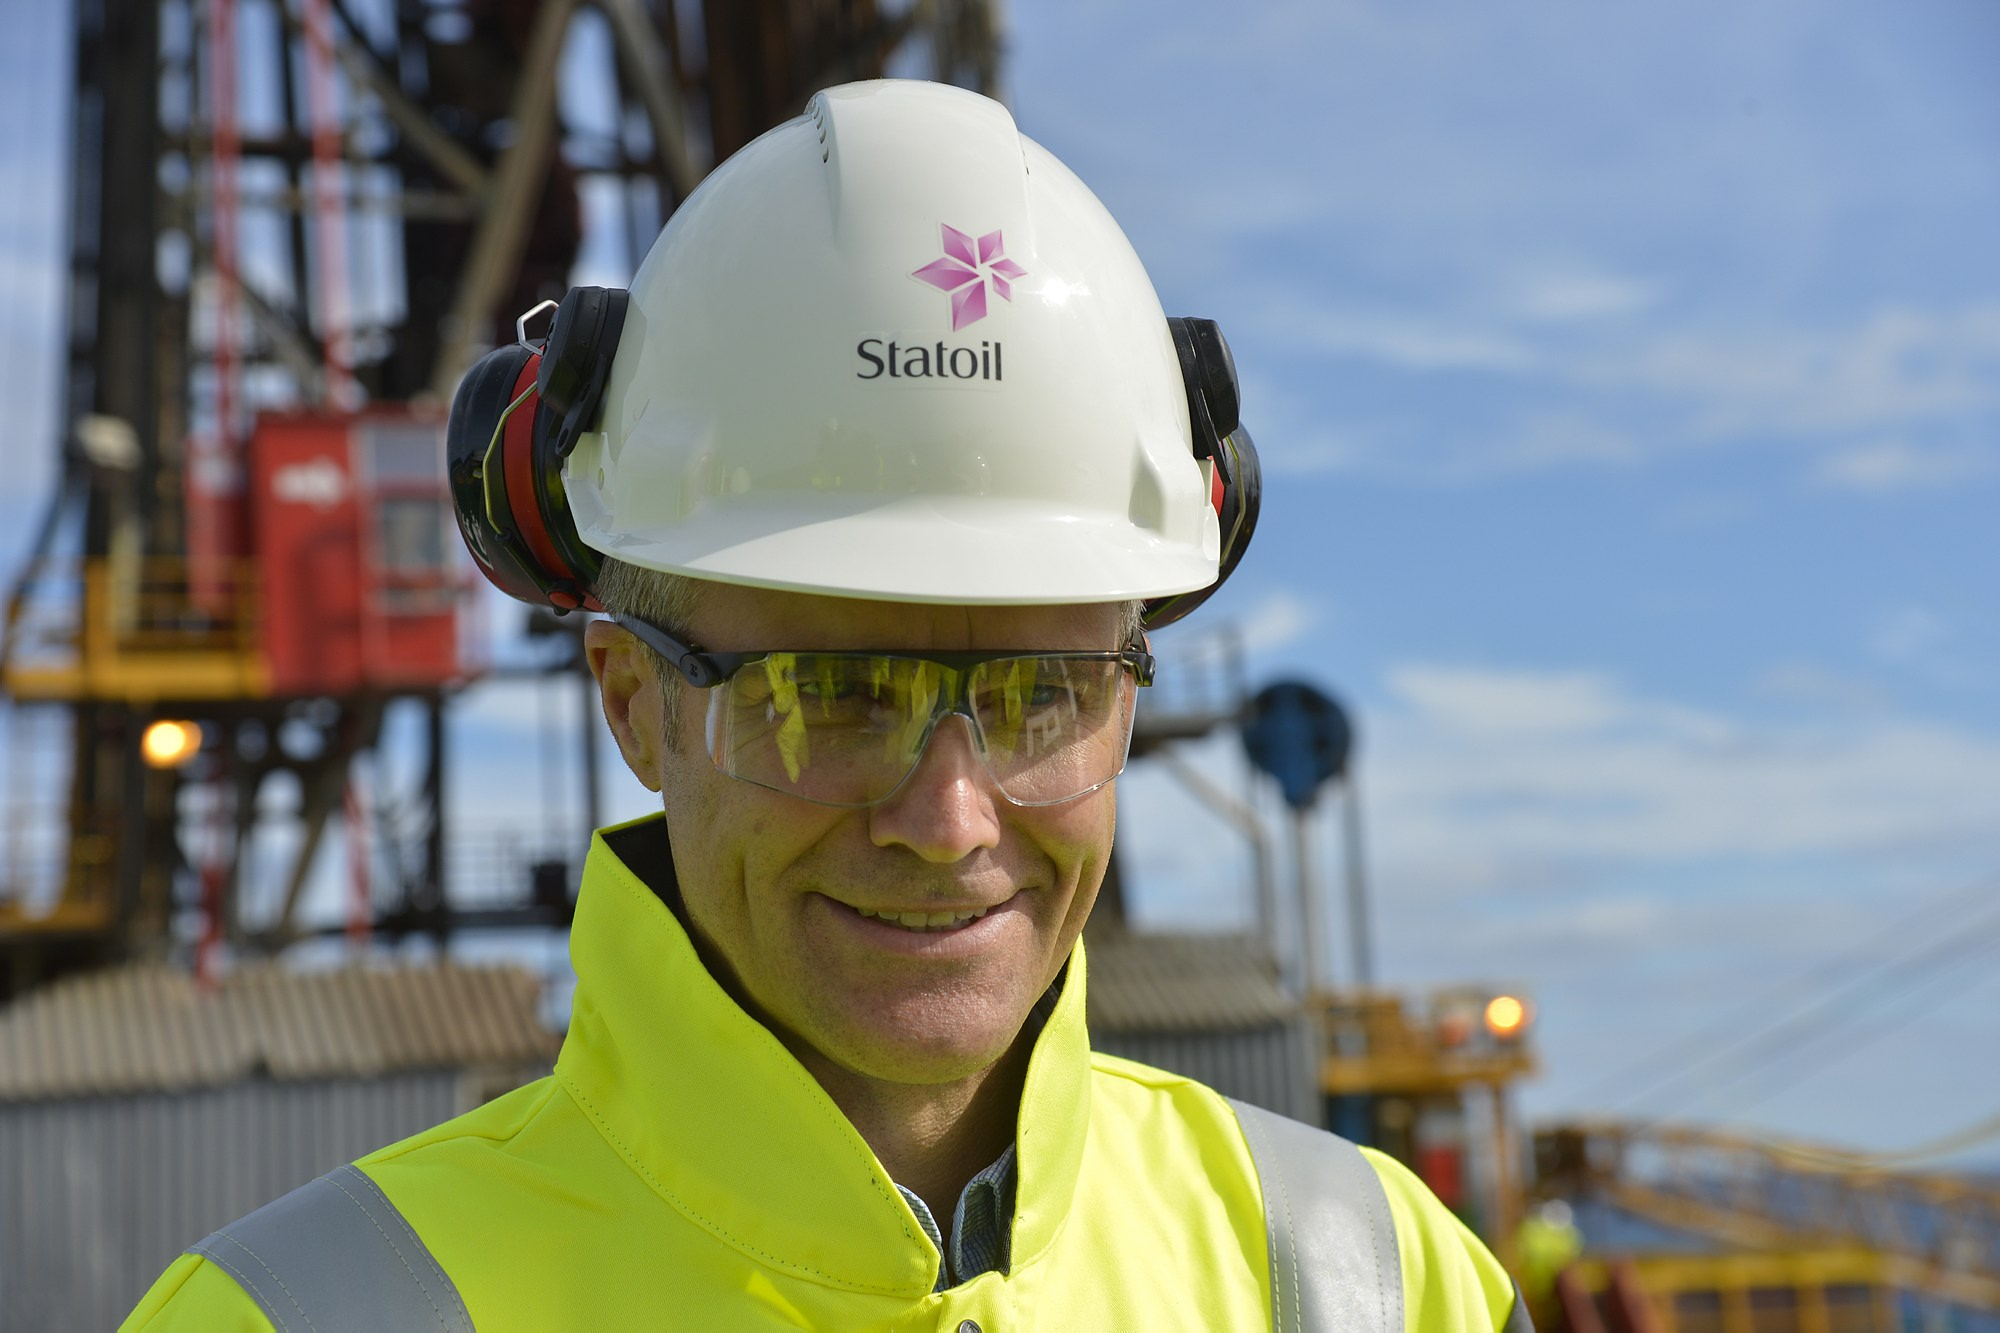 Statoil CEO Speaks at 2012 Autumn Conference